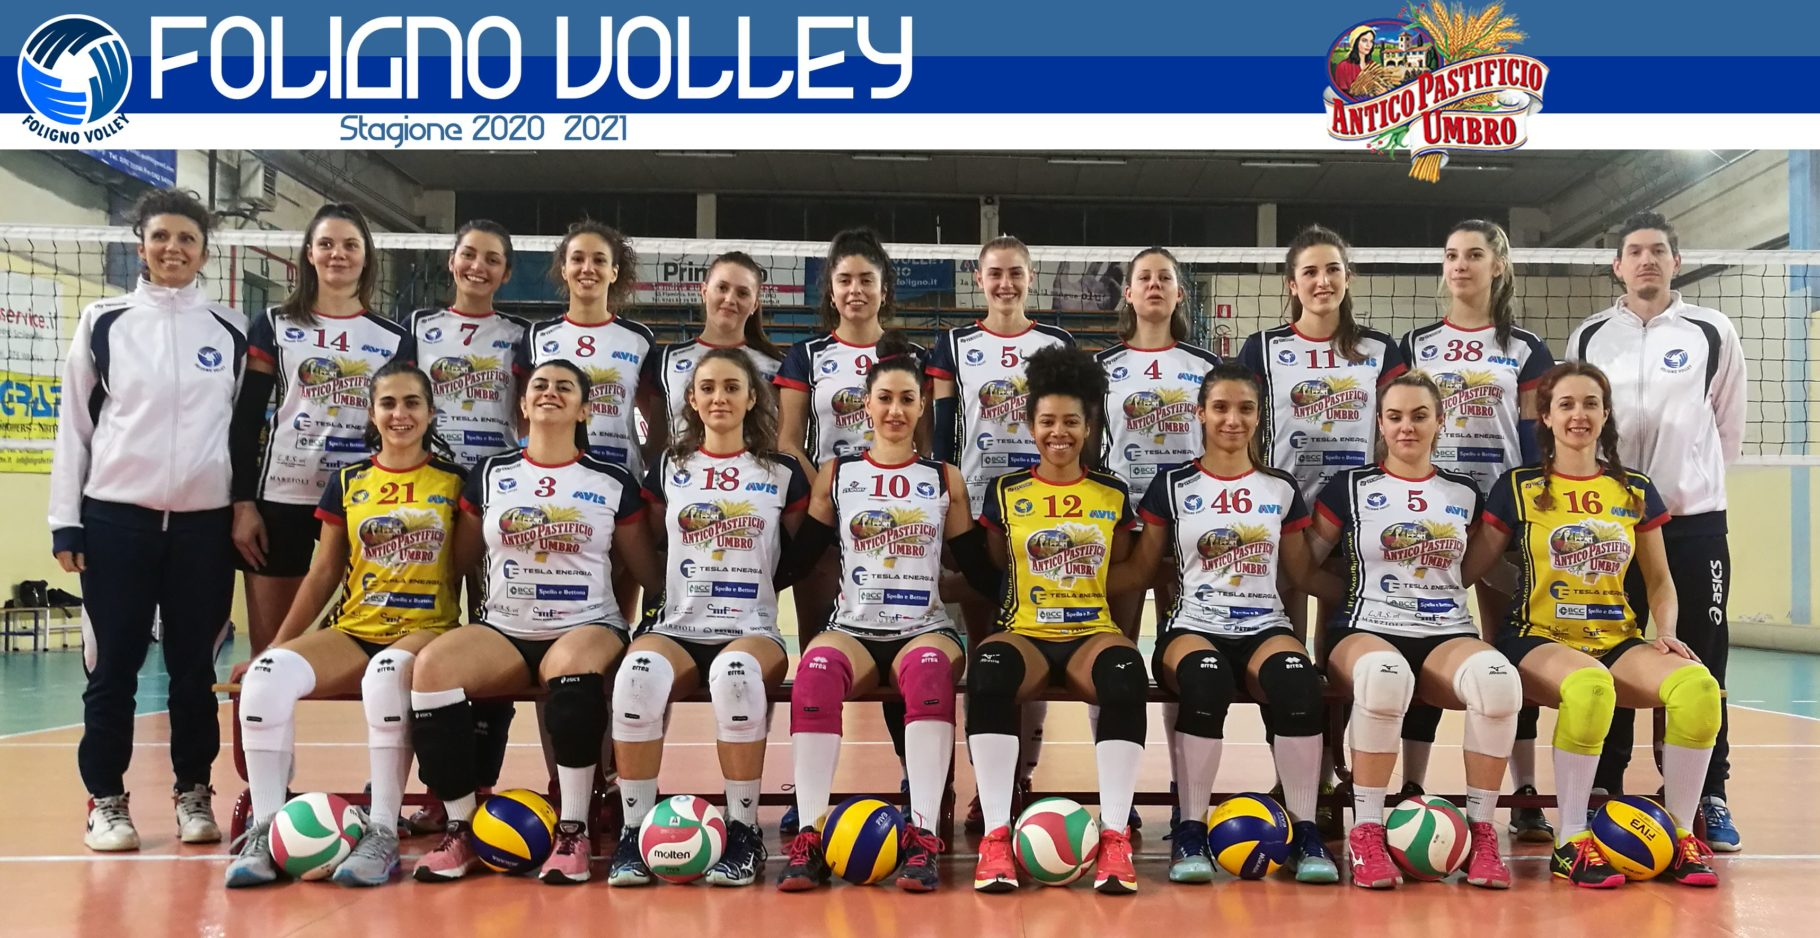 Foligno Volley2021 Antico Pastificio Umbro